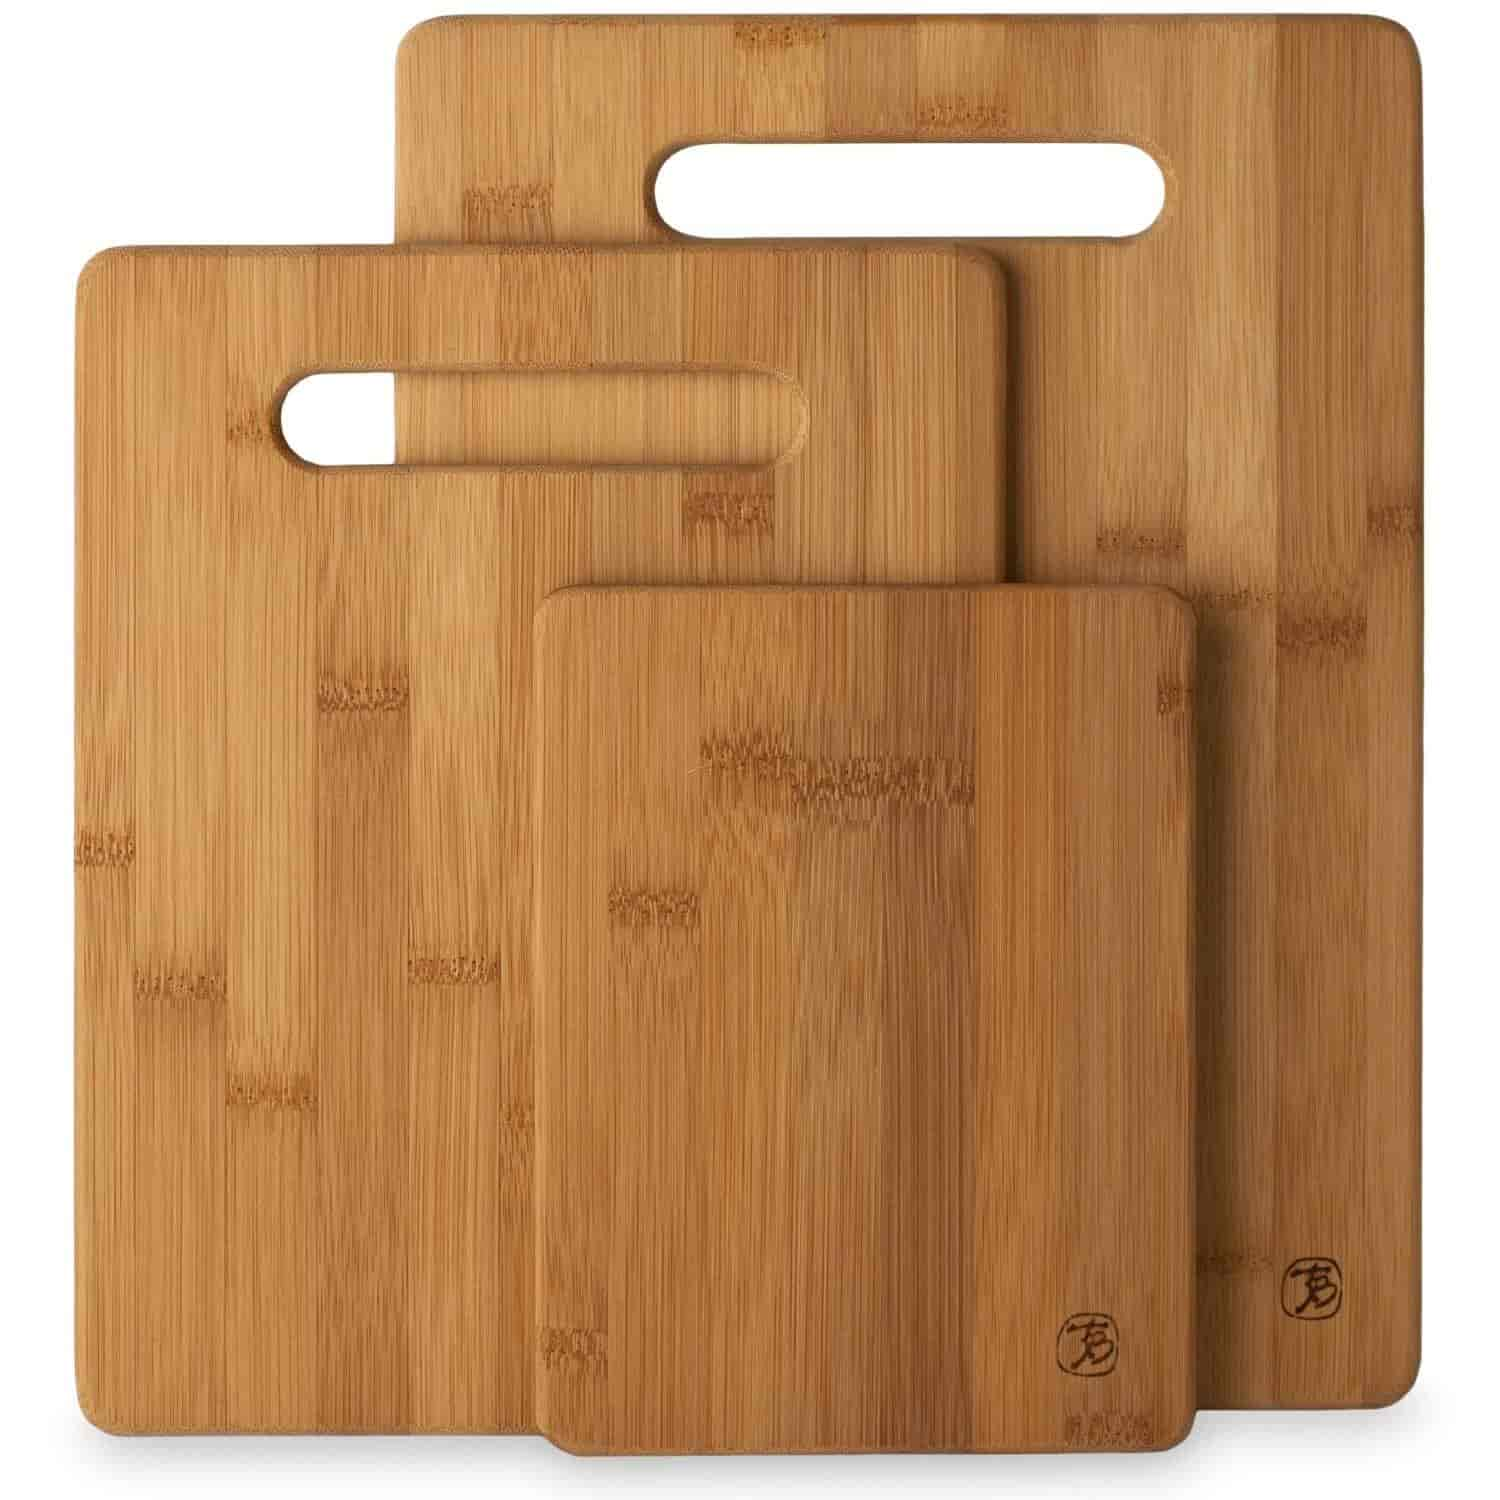 Buy Totally Bamboo 20 7930 3 Piece Cutting Board Set Features